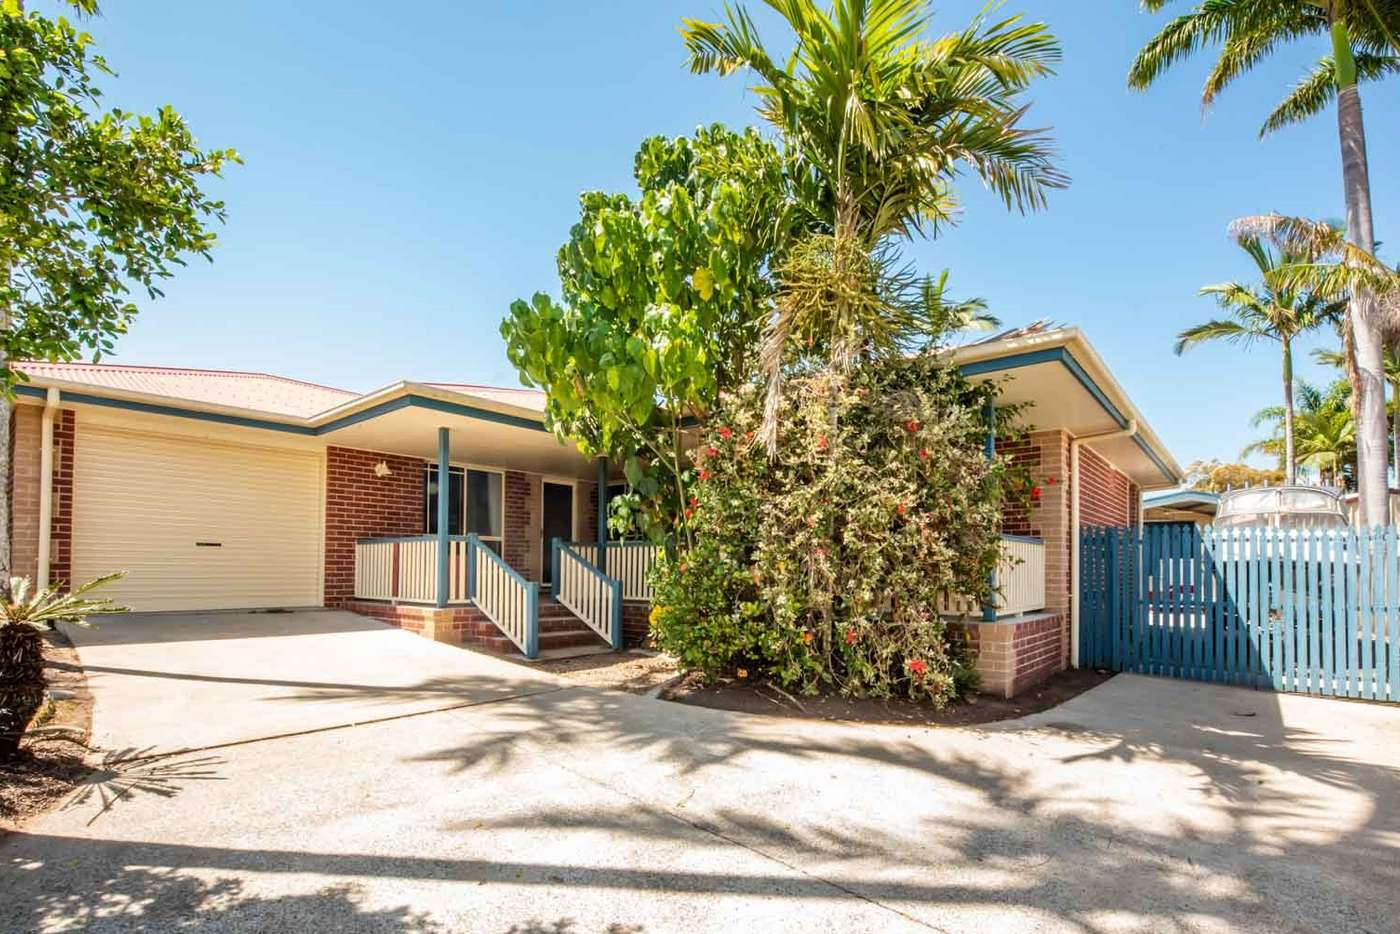 Main view of Homely house listing, 4 Pandanus Street, Beaconsfield QLD 4740